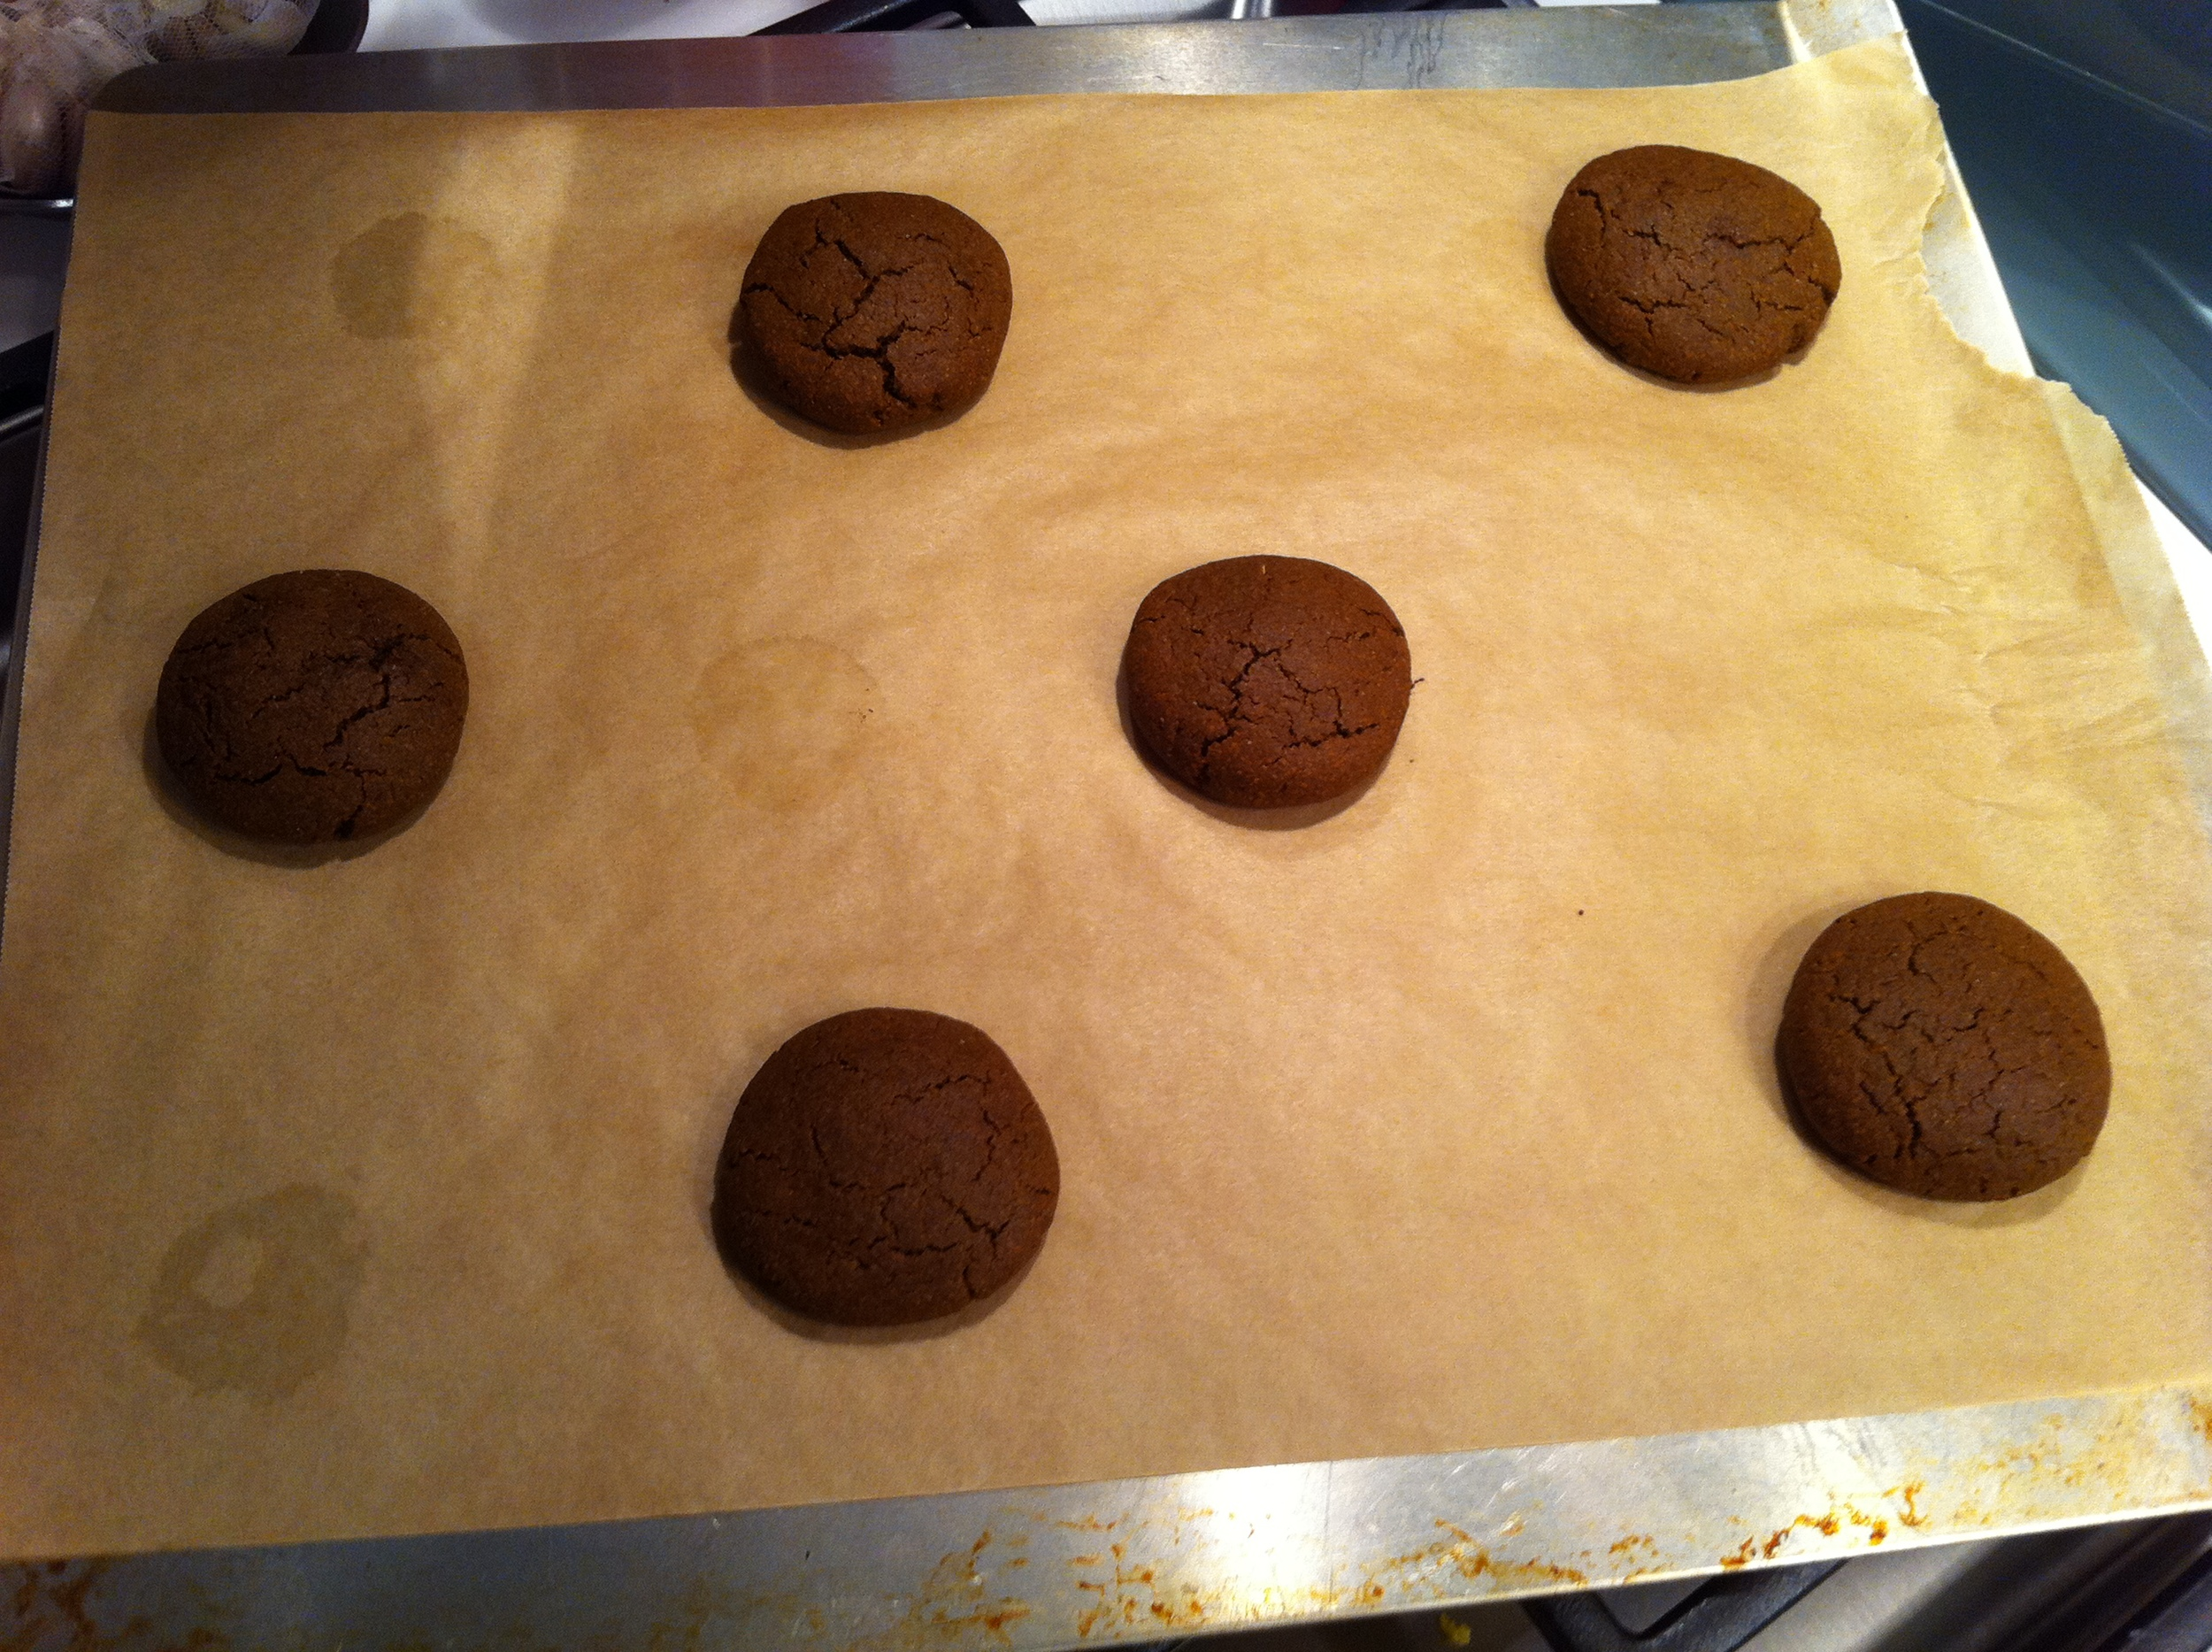 Here are my vegan gingerbread cookies straight out of the oven.